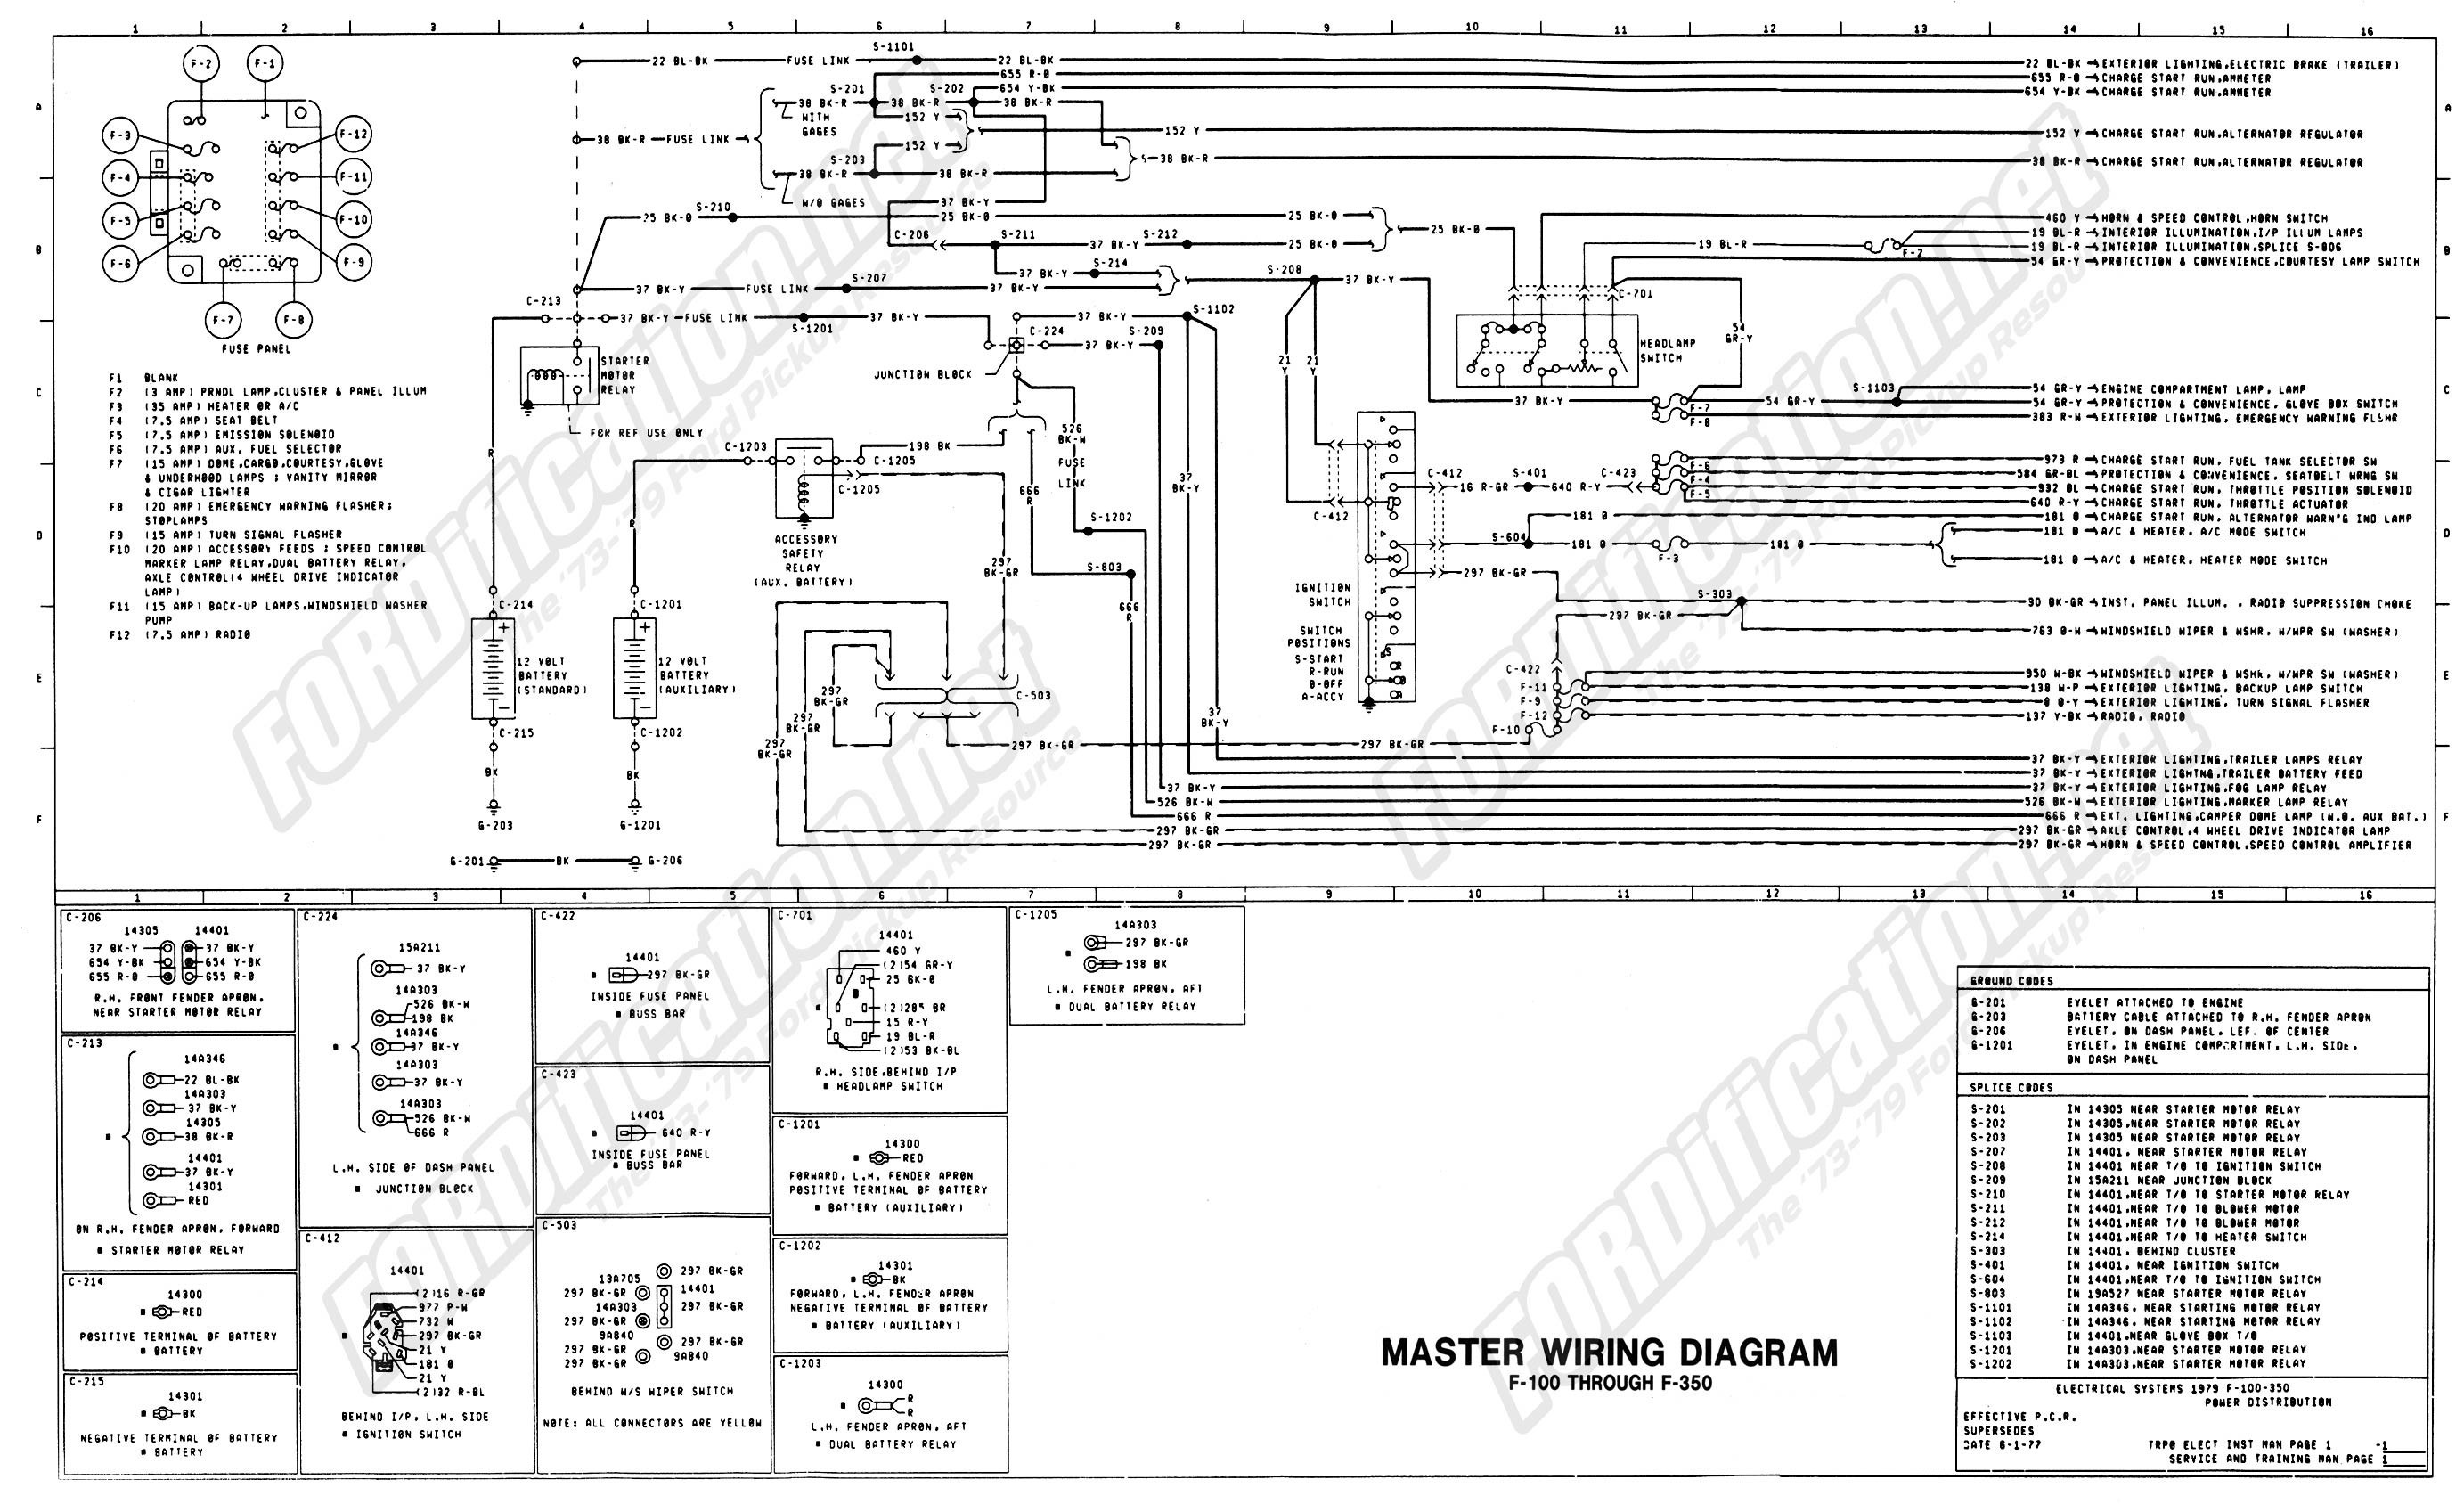 Remote Starter Solenoid Wiring Diagram Ford Inspirational For Car Fresh 79 F150 Truck Enthusiasts Forums